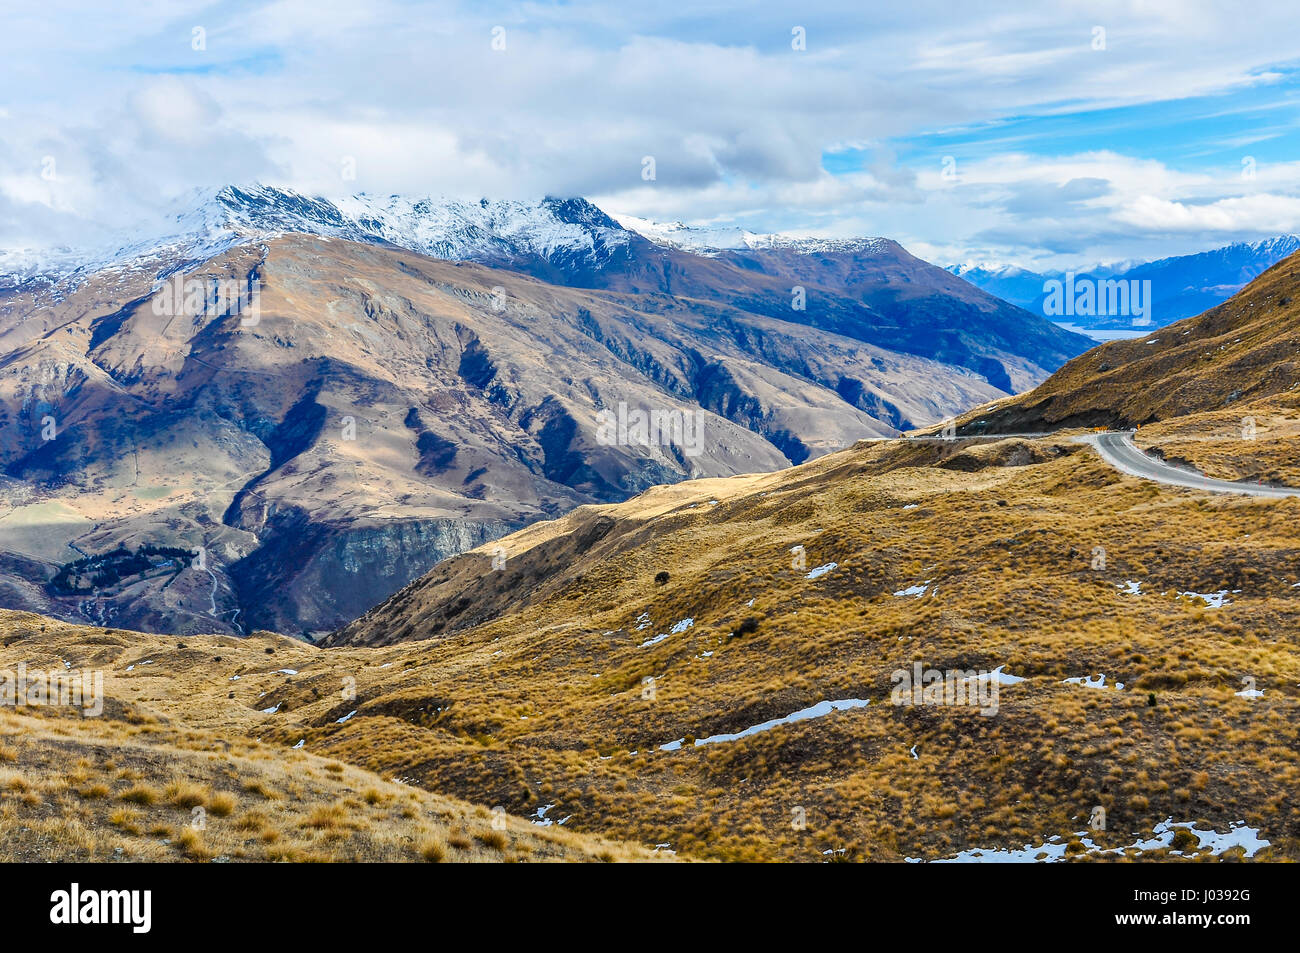 Crown Range Road near Queenstown in the Southern Lakes Region of New Zealand - Stock Image